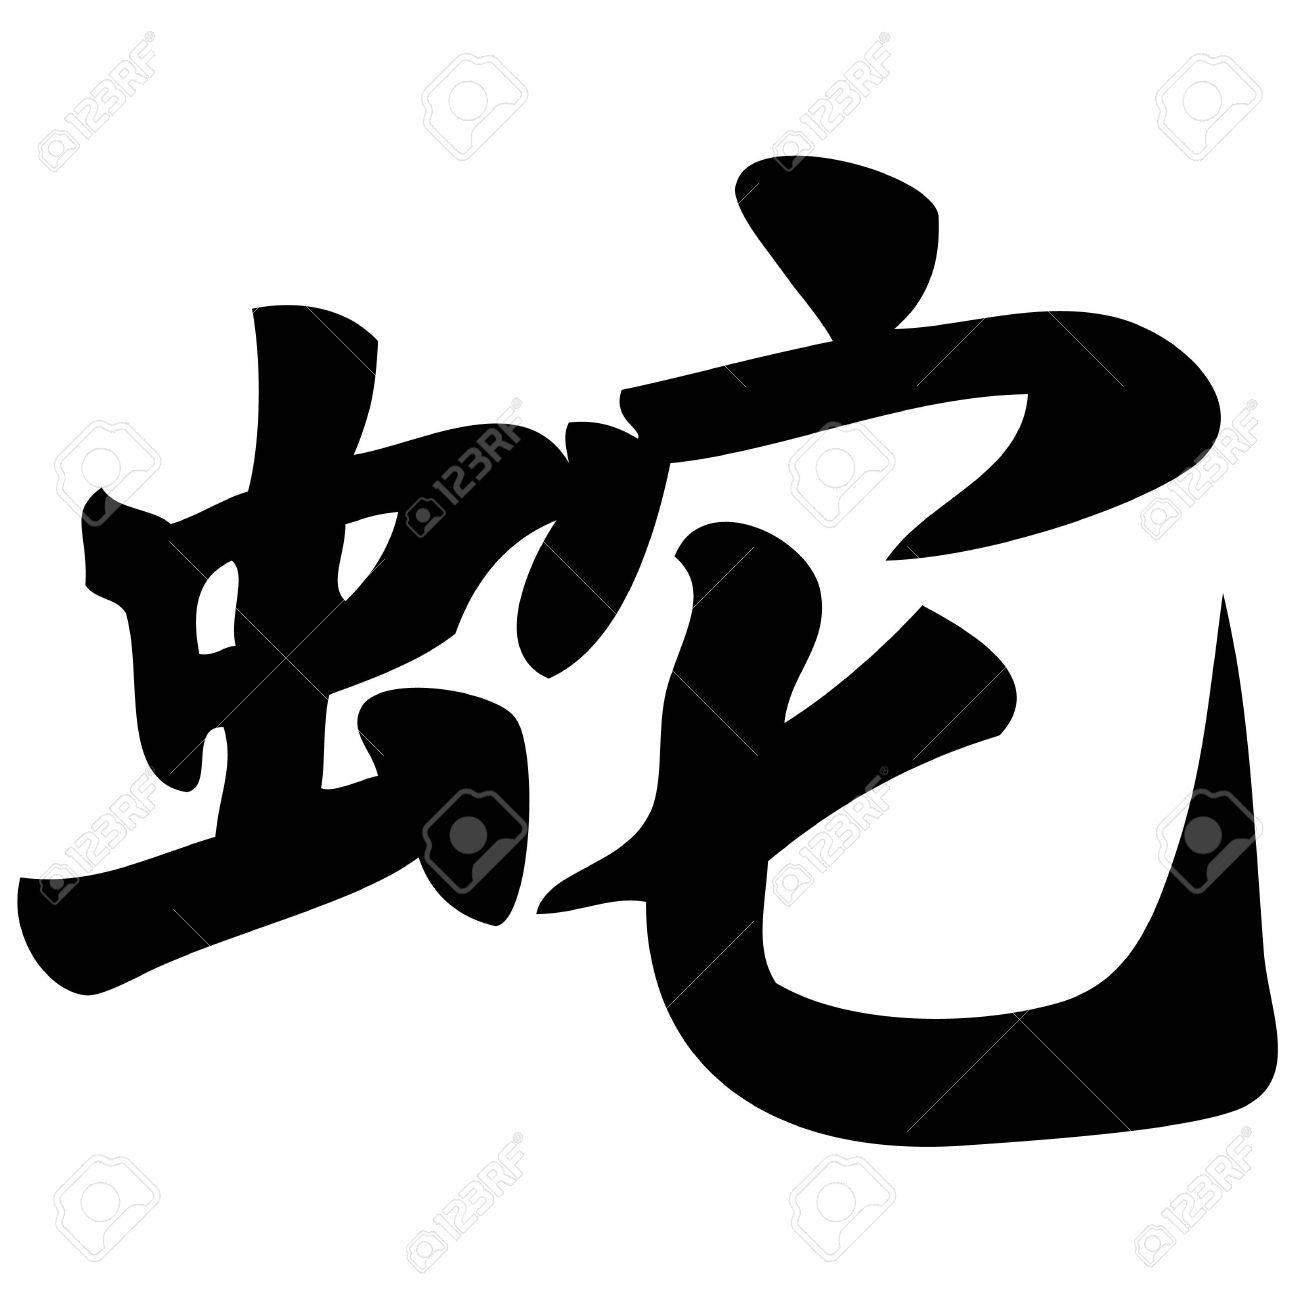 Snake Chinese Calligraphy Symbol Character Zodiac Stock Photo